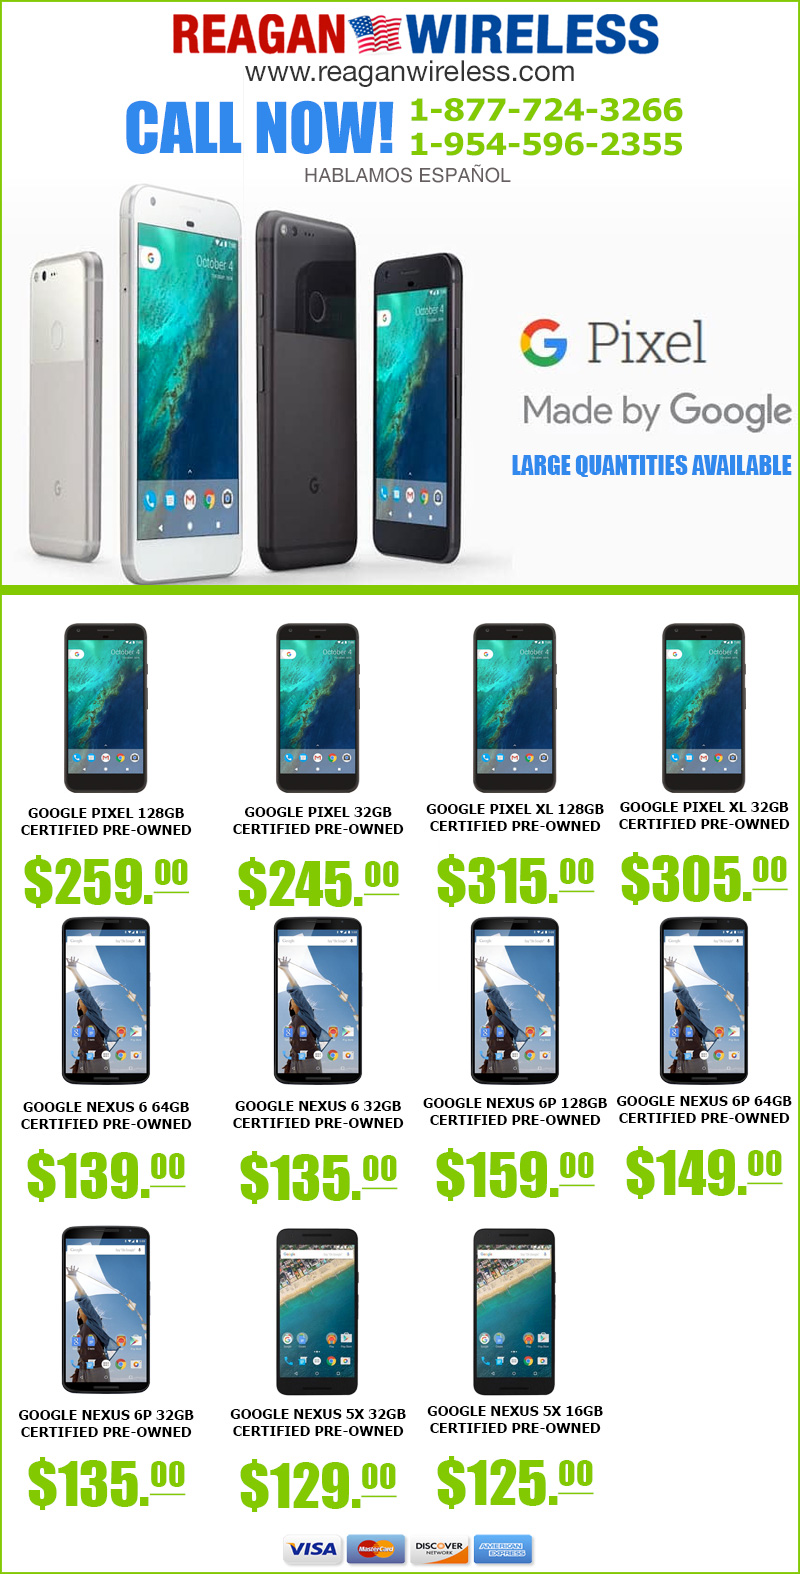 Google Certified Pre-owned Phones at Reagan Wireless